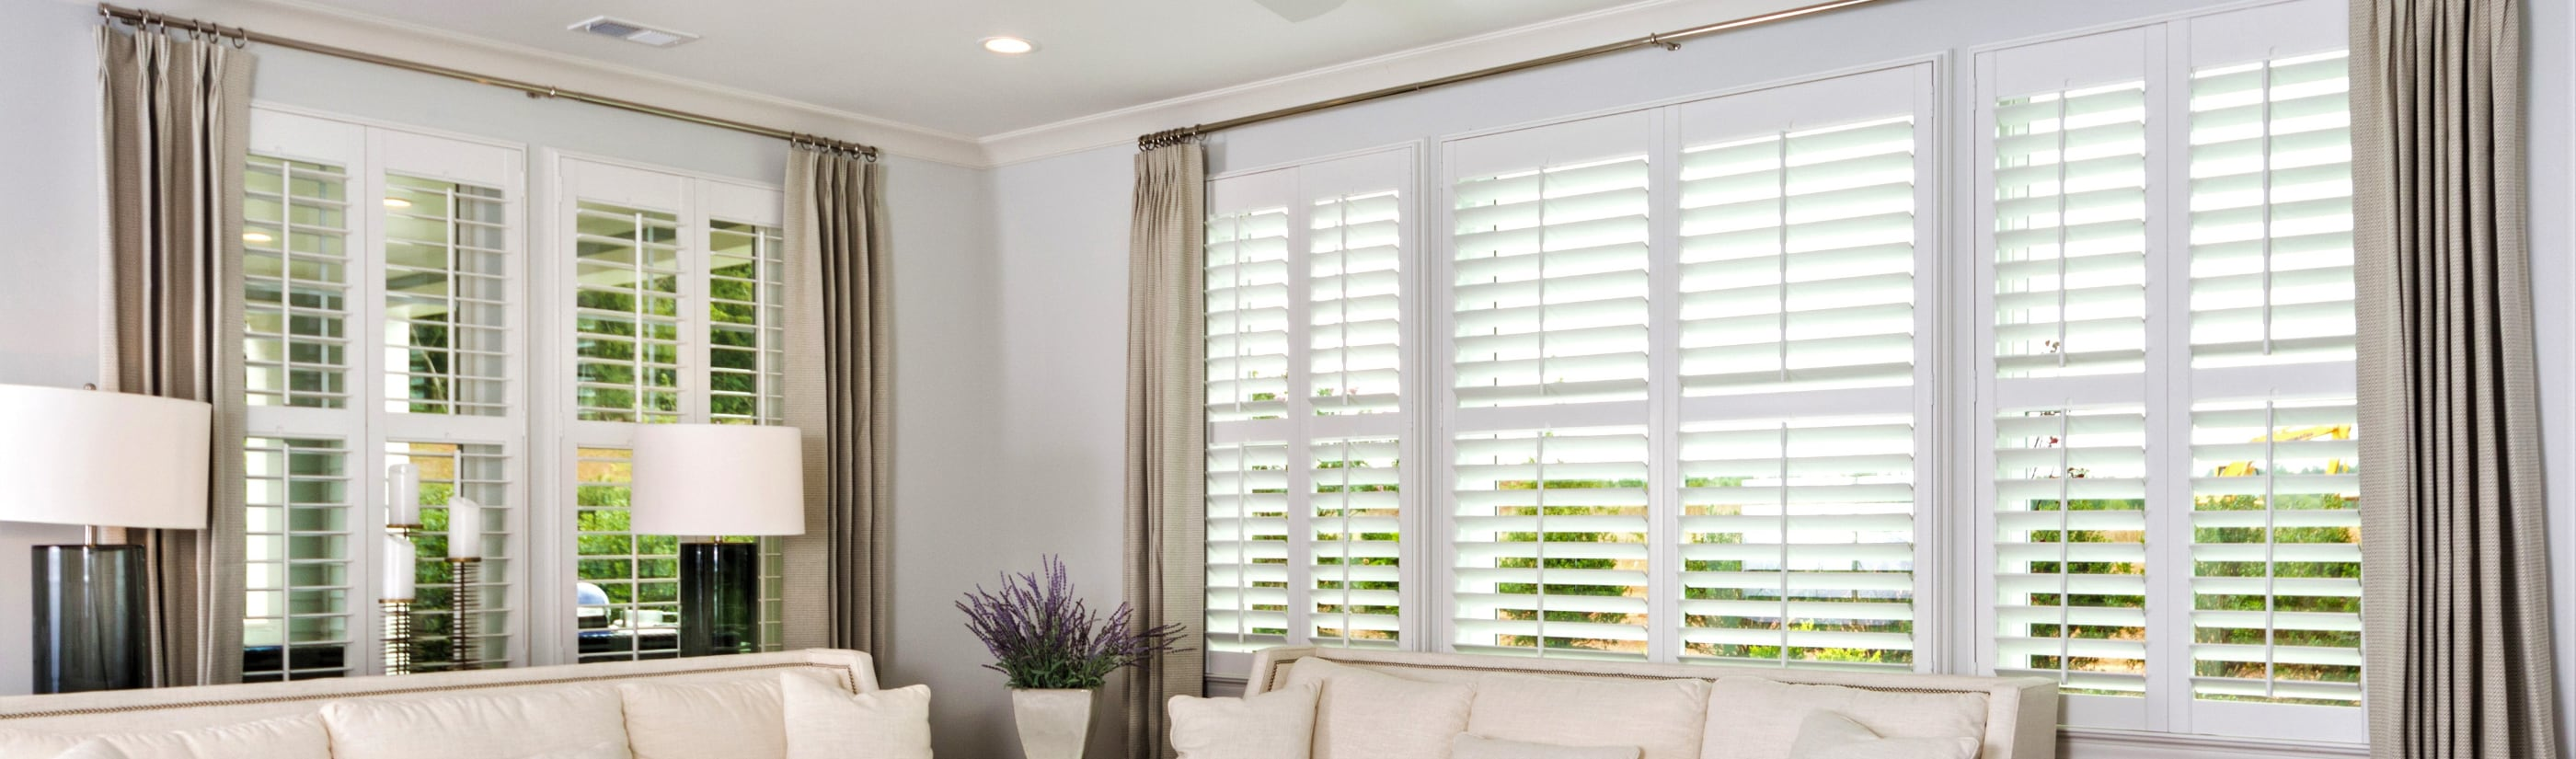 Polywood Shutters Paints In Charlotte